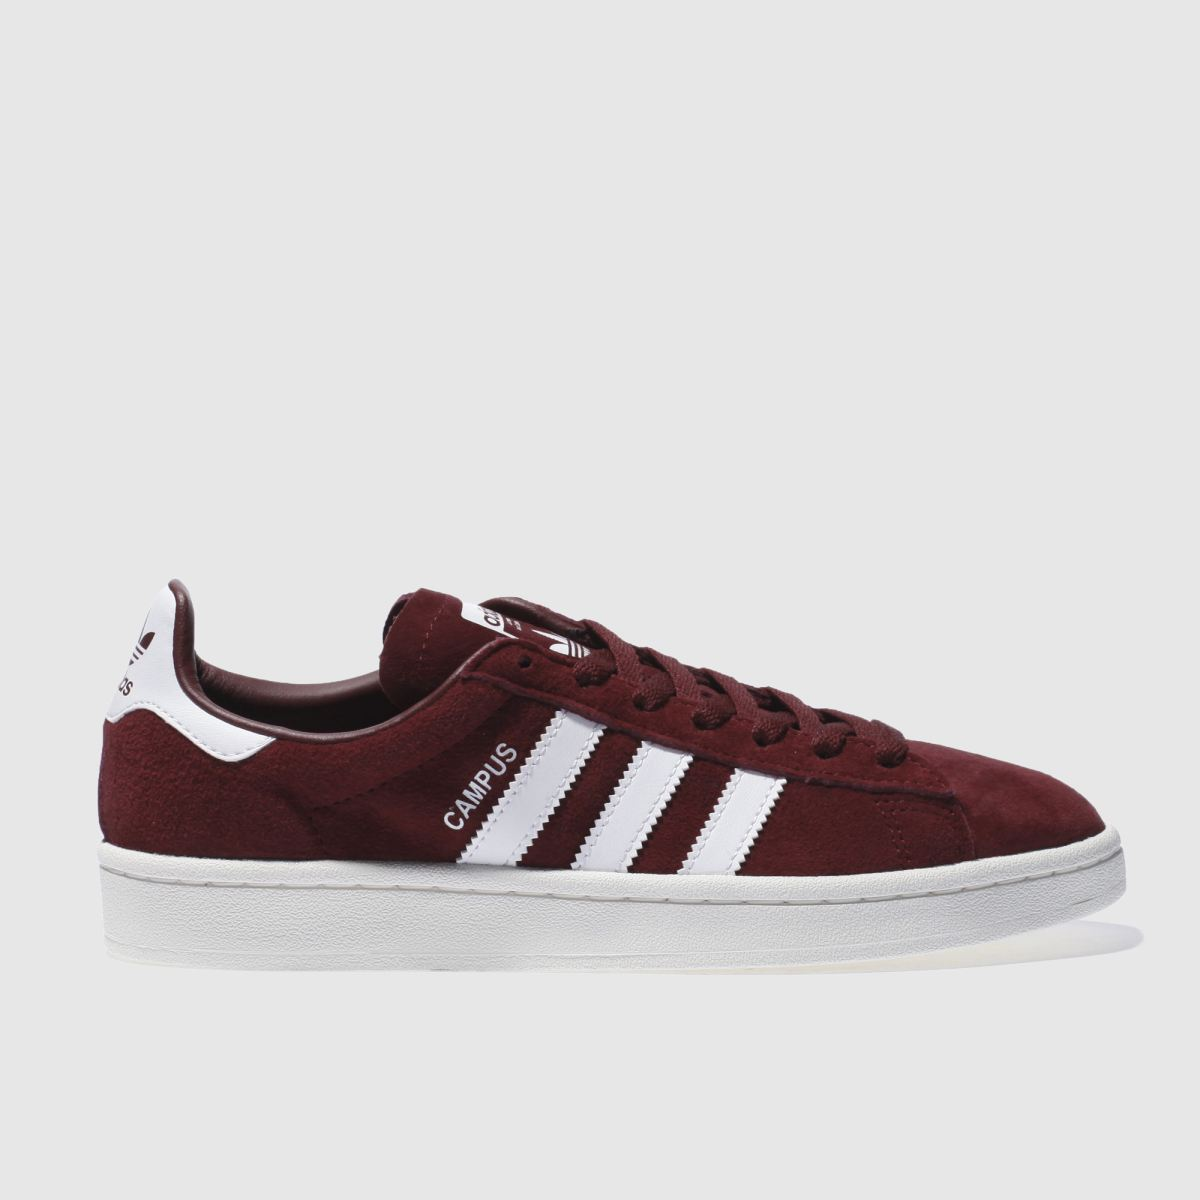 Adidas Burgundy Campus Trainers